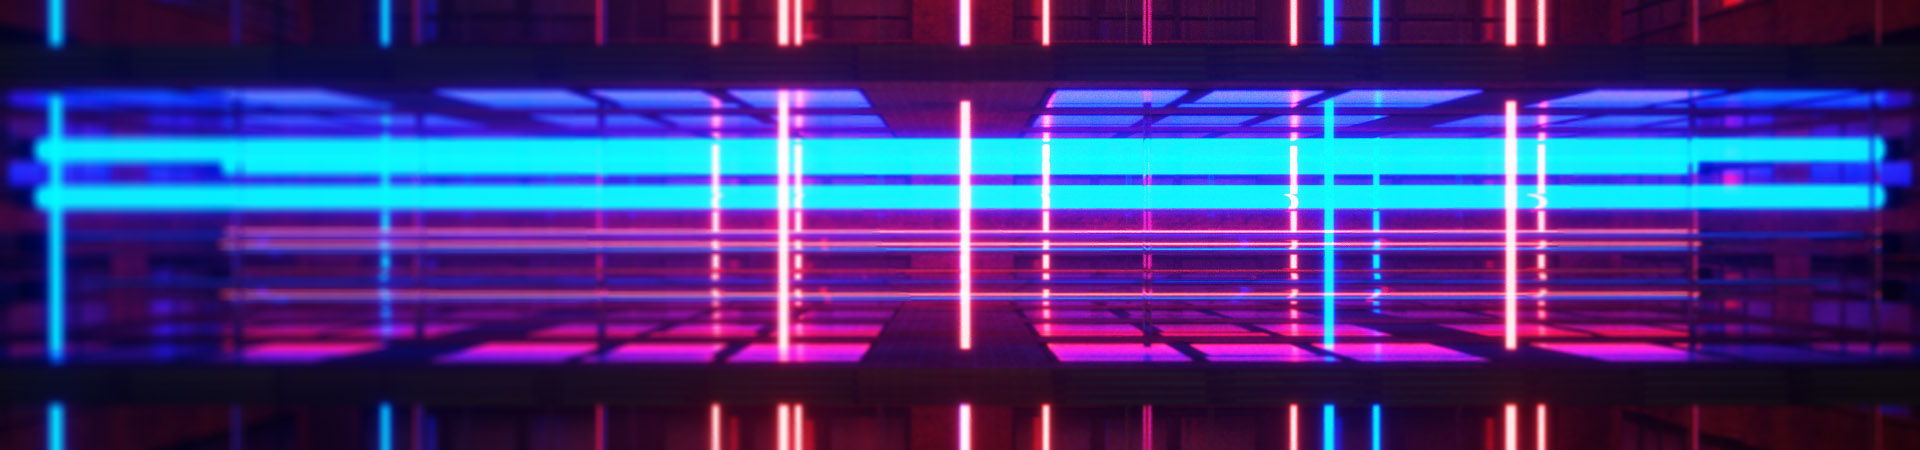 SLIDER-Neon-Rooms-D